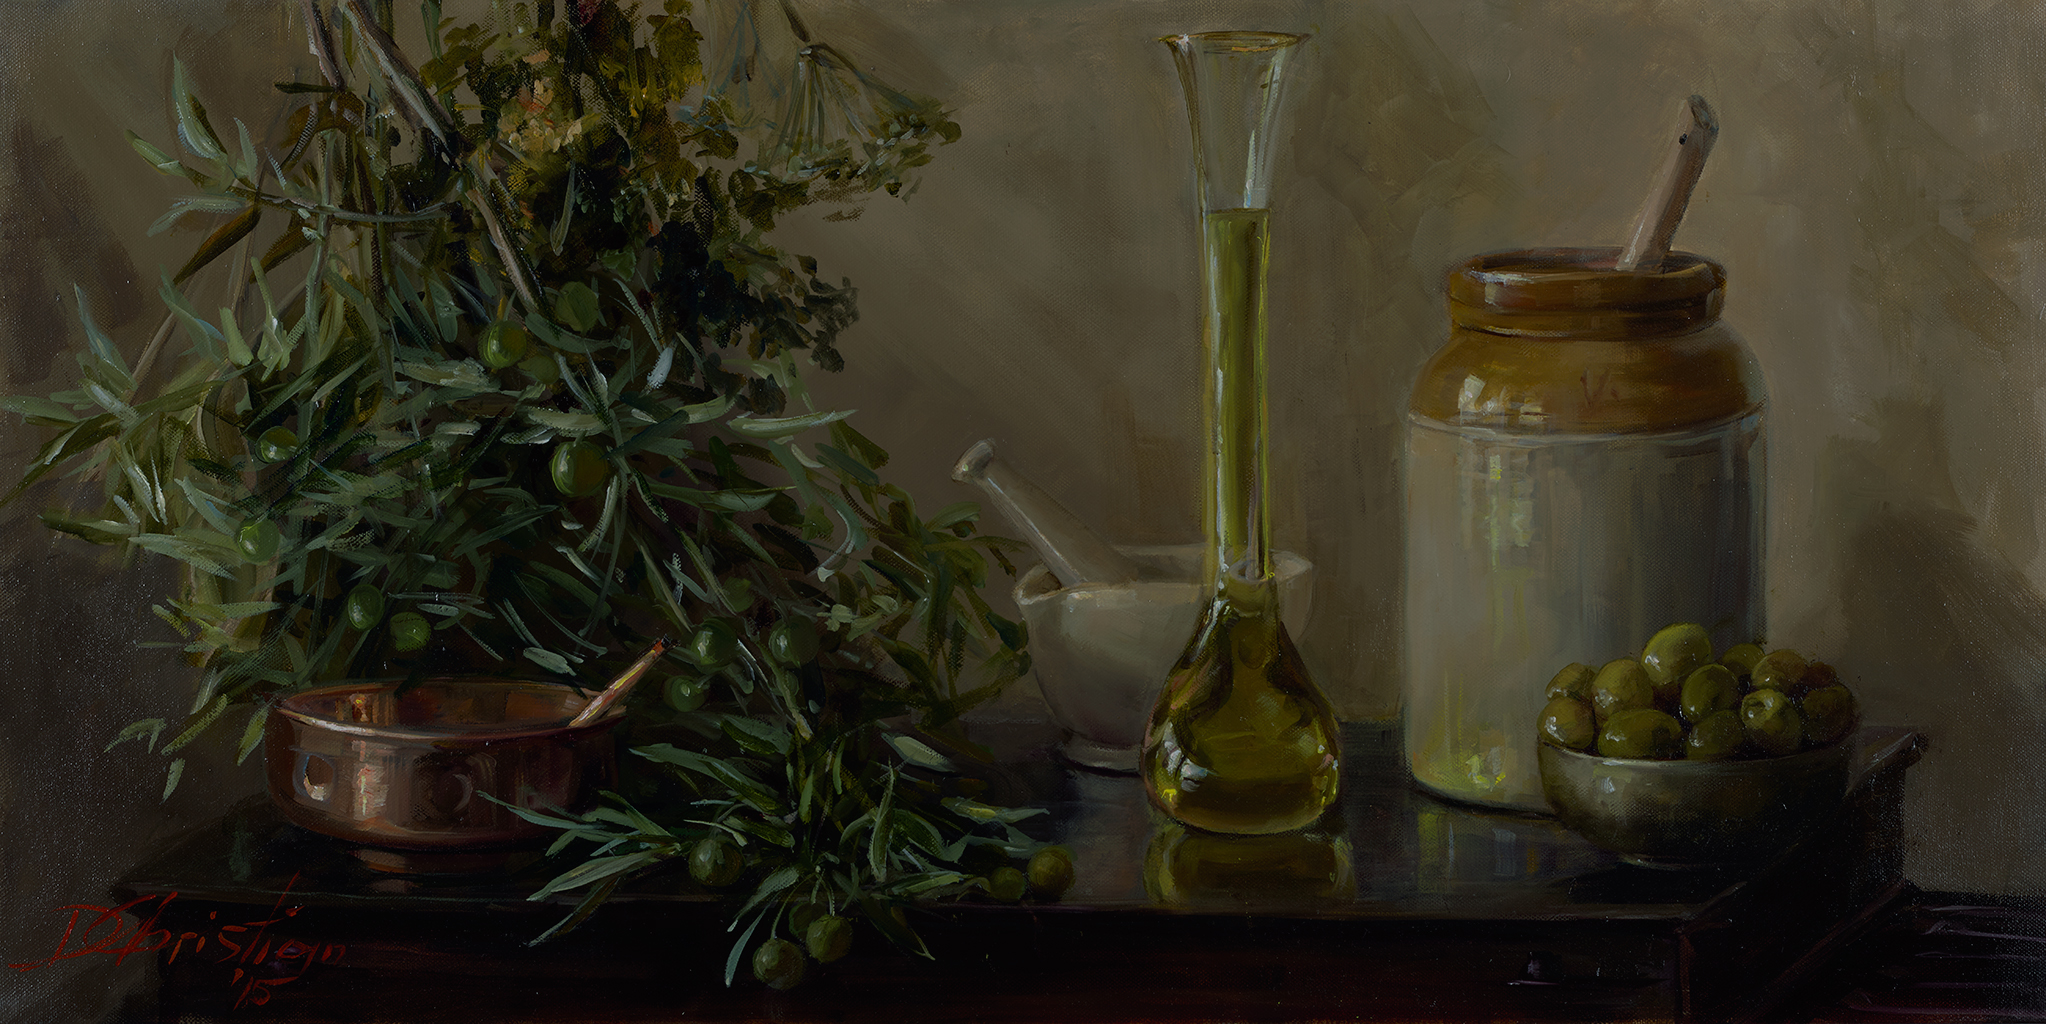 """SCHOOL OPENING FEBRUARY 2019 - The New School of Classical Painting will begin classes from February 2nd, 2019.Held in Deny's atelier studio in picturesque Daylesford, classes run several days a week over the school term and offer art students an intimate tuition space and time to develop foundational and continuing skills in fine art.Please see """"Classes"""" section for times and prices."""